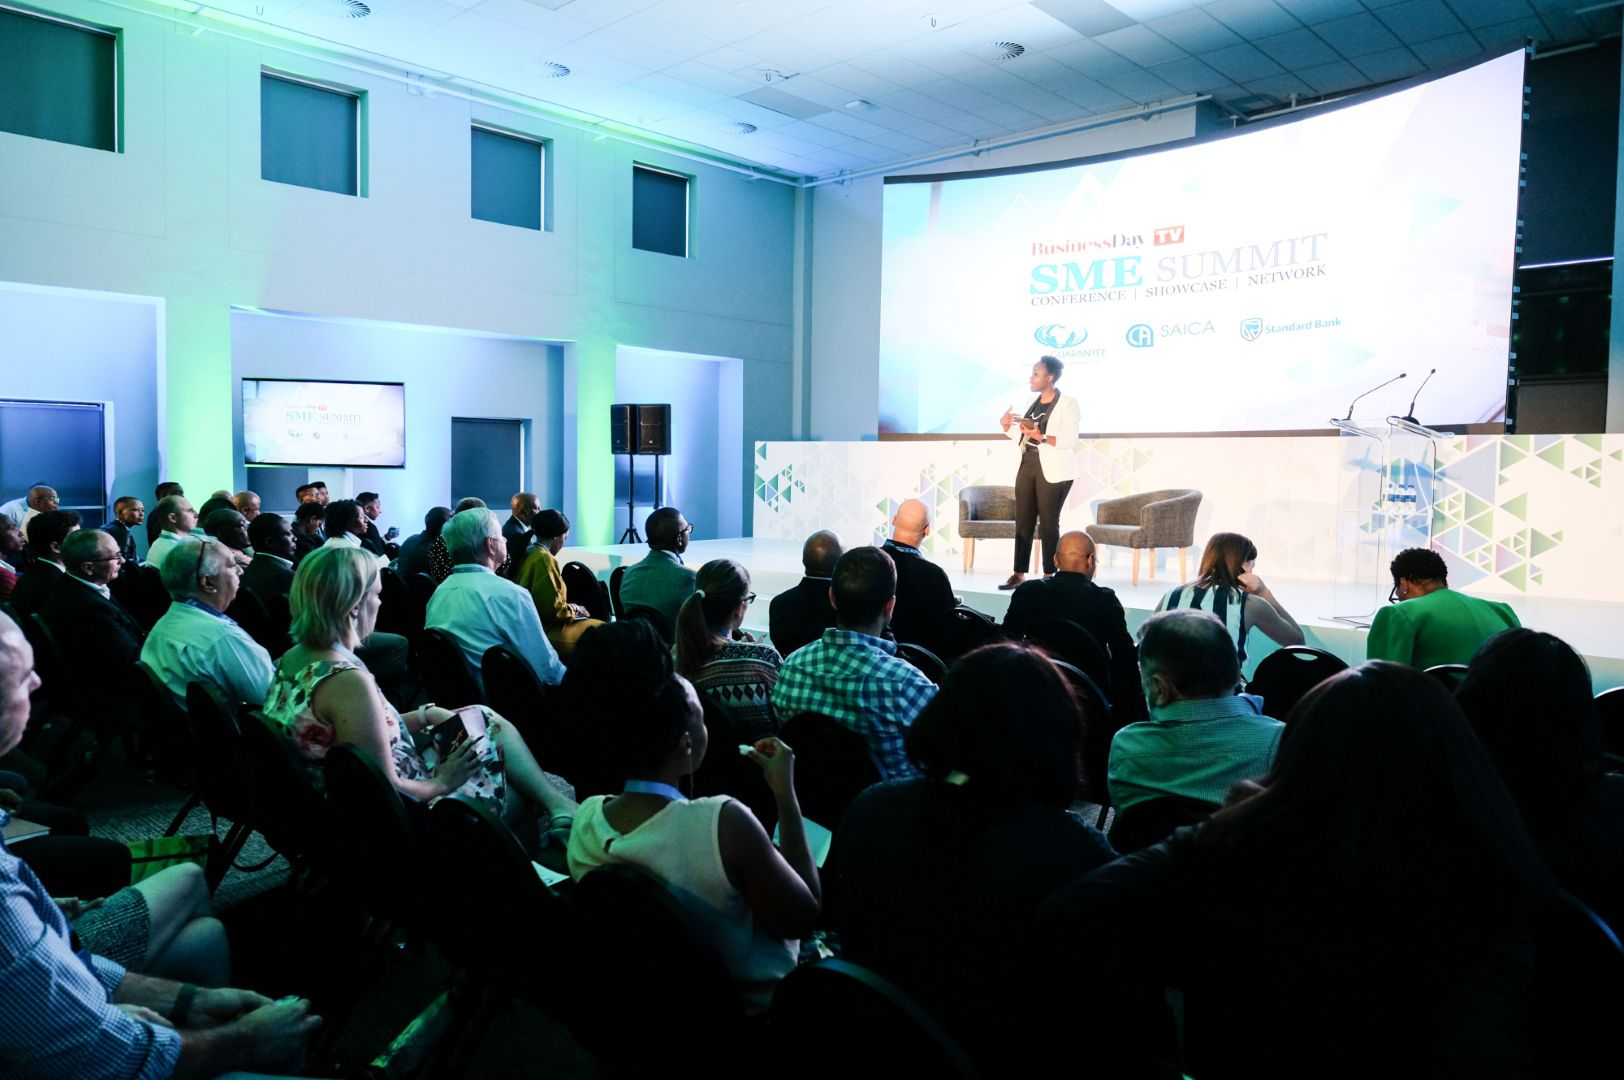 Business Day TV SME Summit